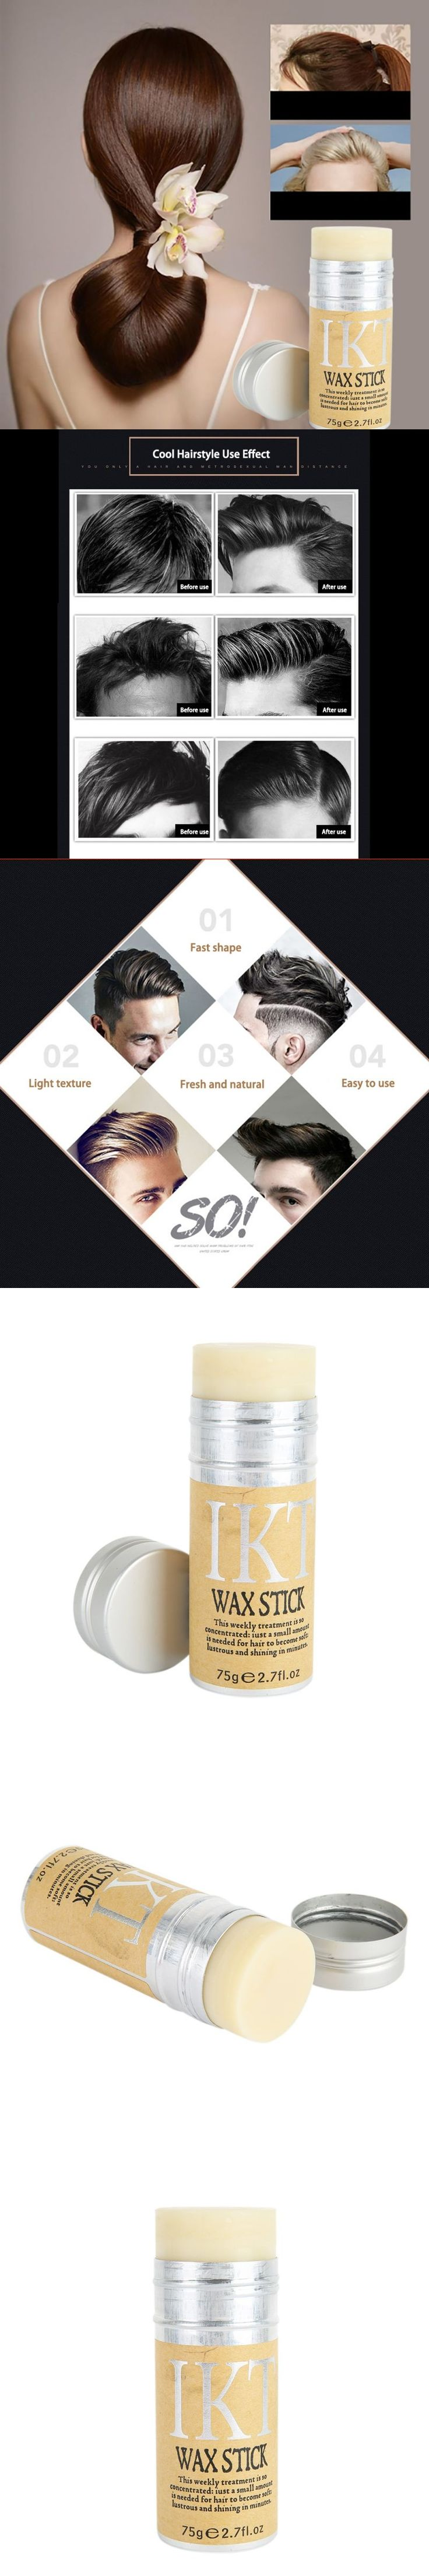 Styling Pomade Stick Rapid fixed Repair Hair Smell Fresh not oily Male Female Hair Wax Rod Broken Hair Finishing M2